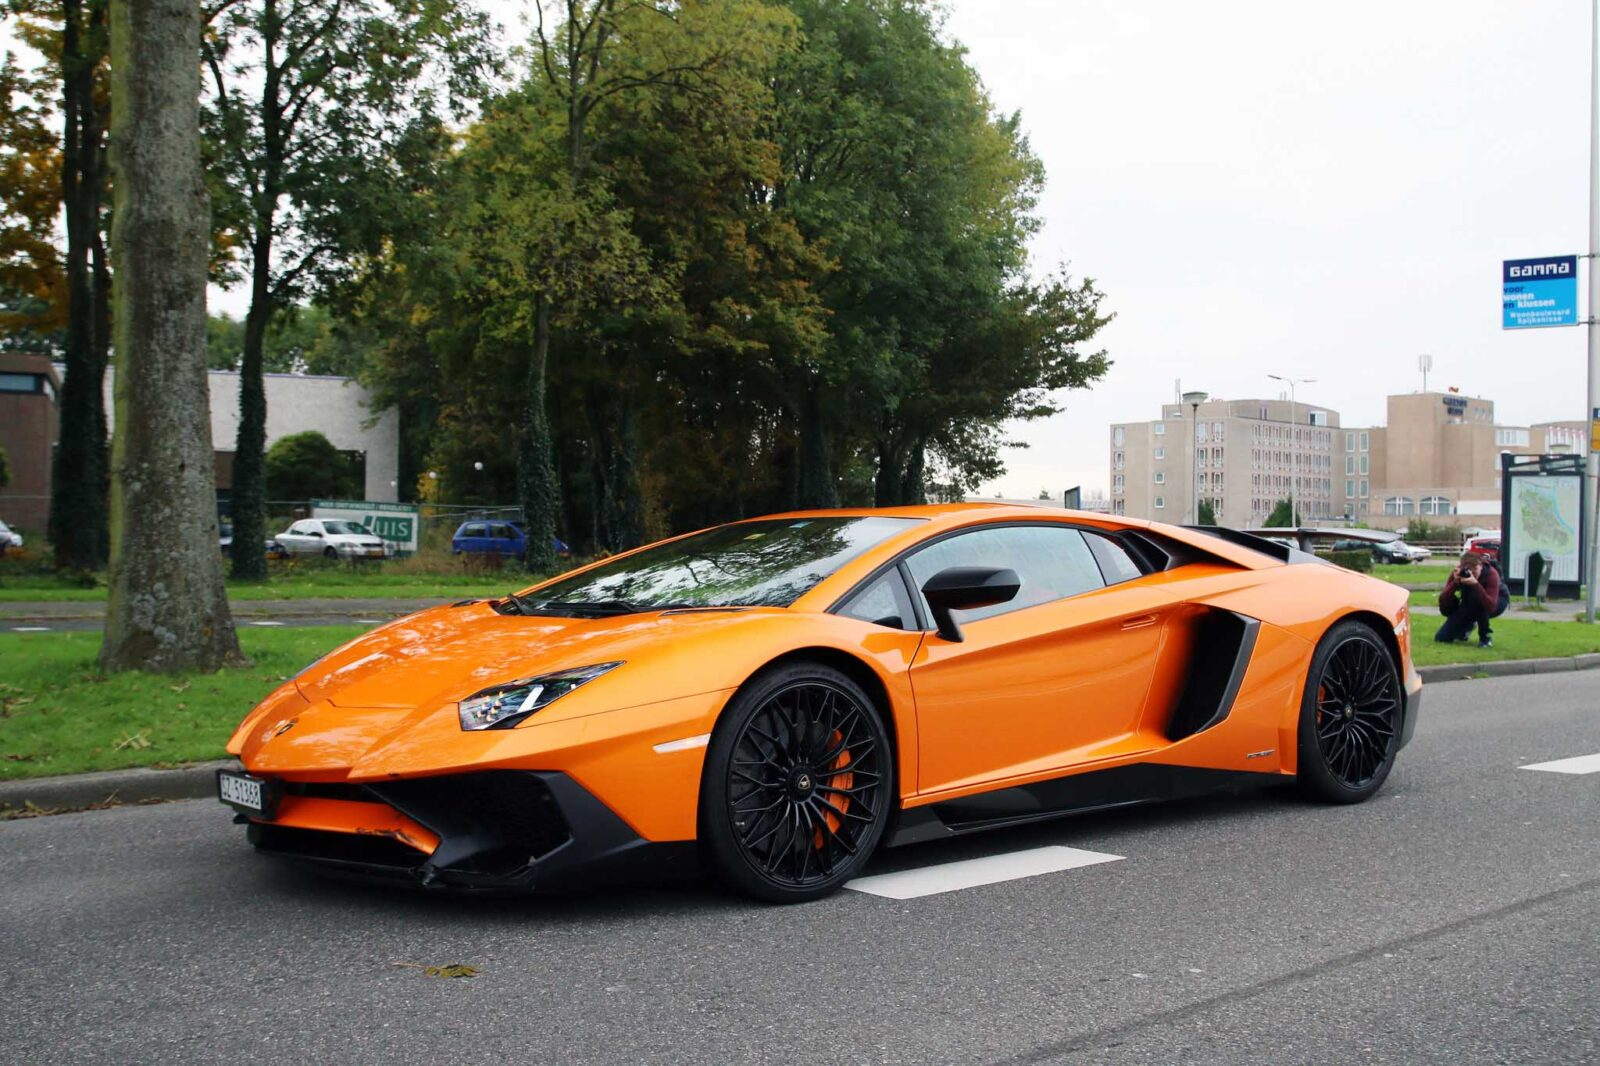 40+ Lamborghini Aventador wallpapers HD Desktop free download